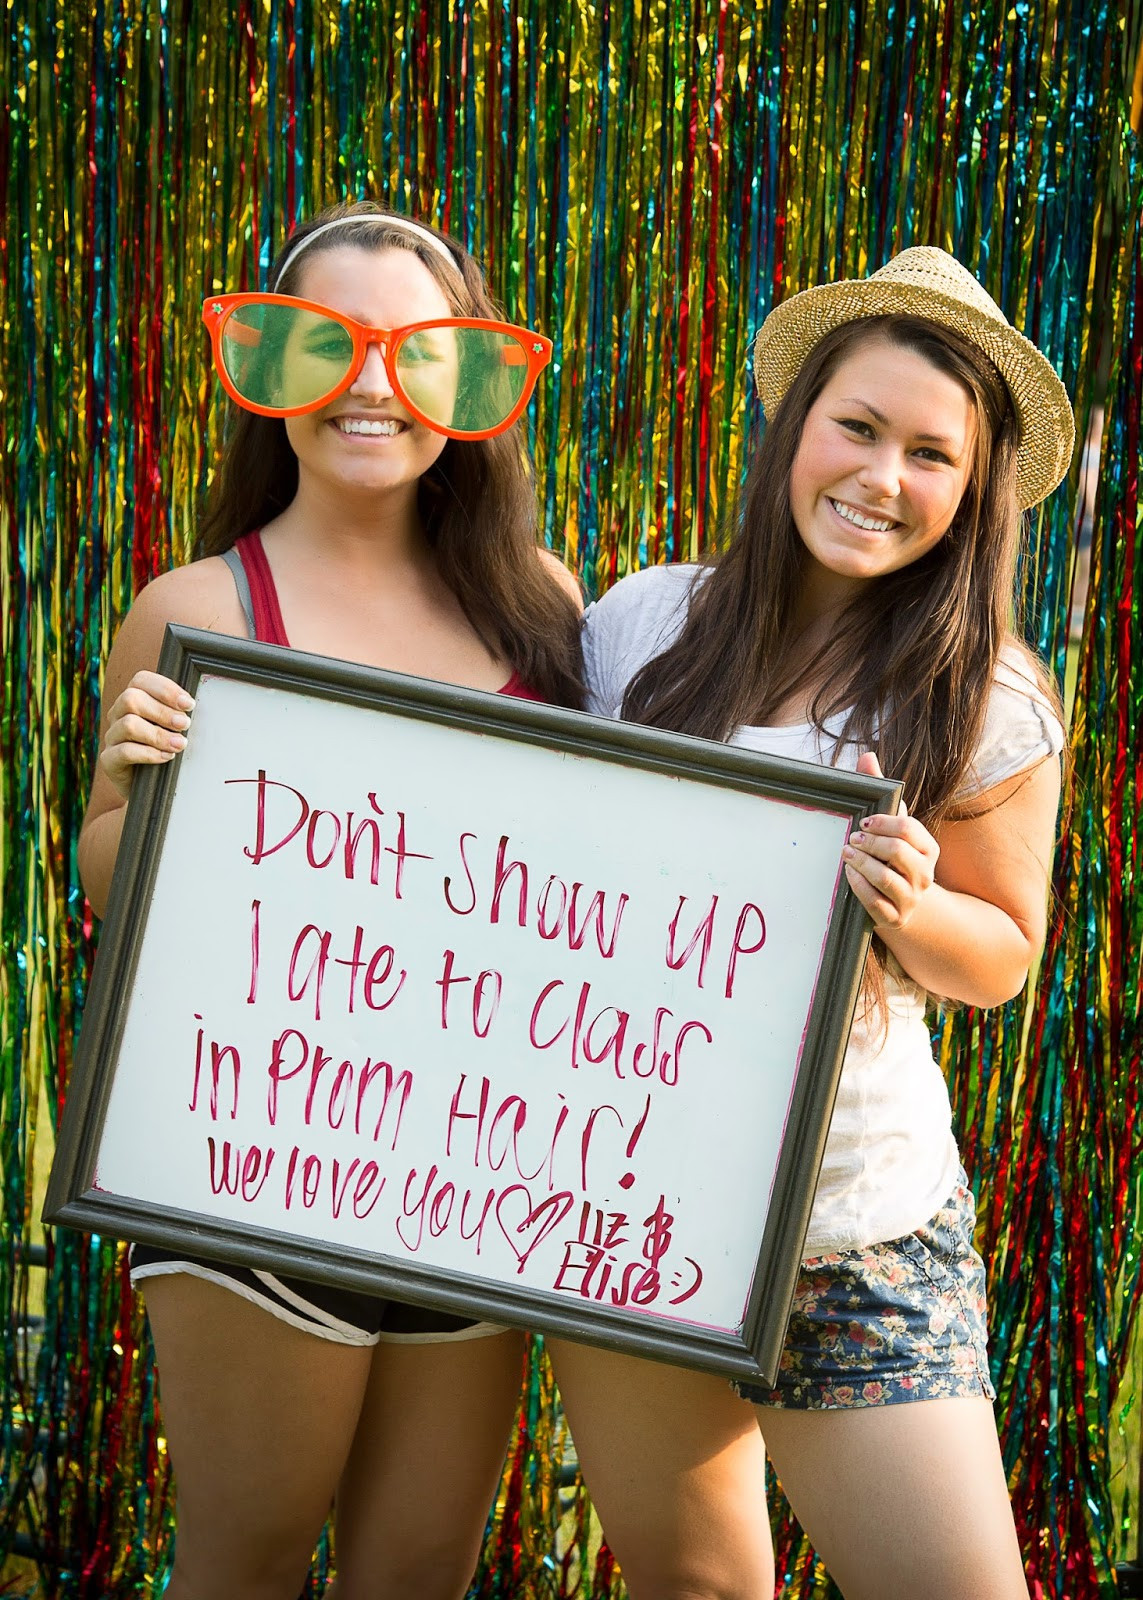 Photo Booth Ideas For Graduation Party  Karyn Nicoll graphy Graduation Party Booth